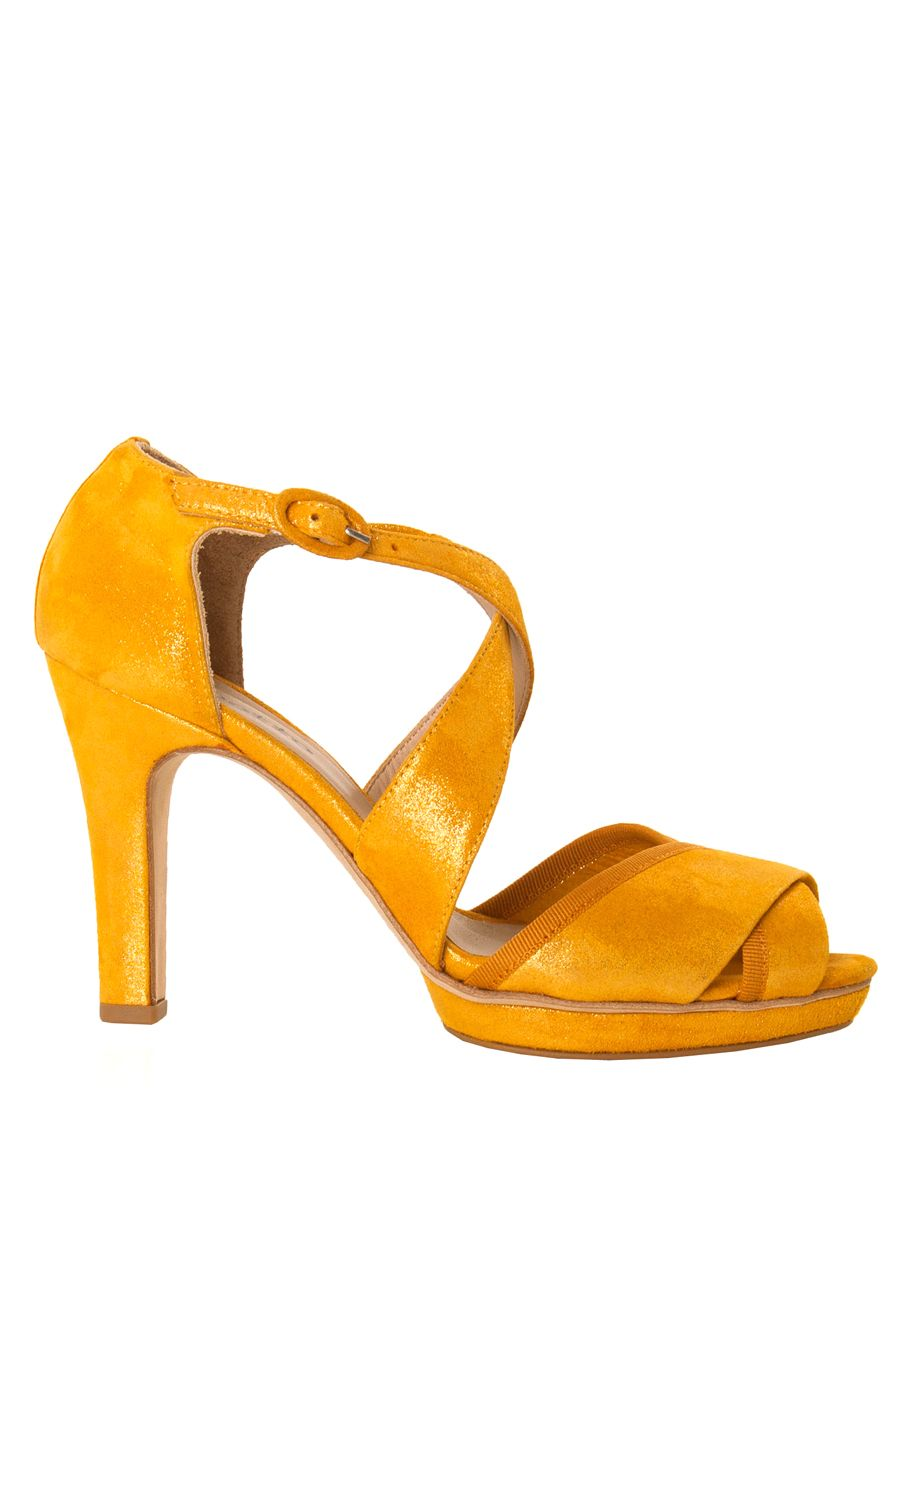 Repetto metallic goatskin oil orange suede suzanne #sandal - #ss13 www.sansovinomoda.it